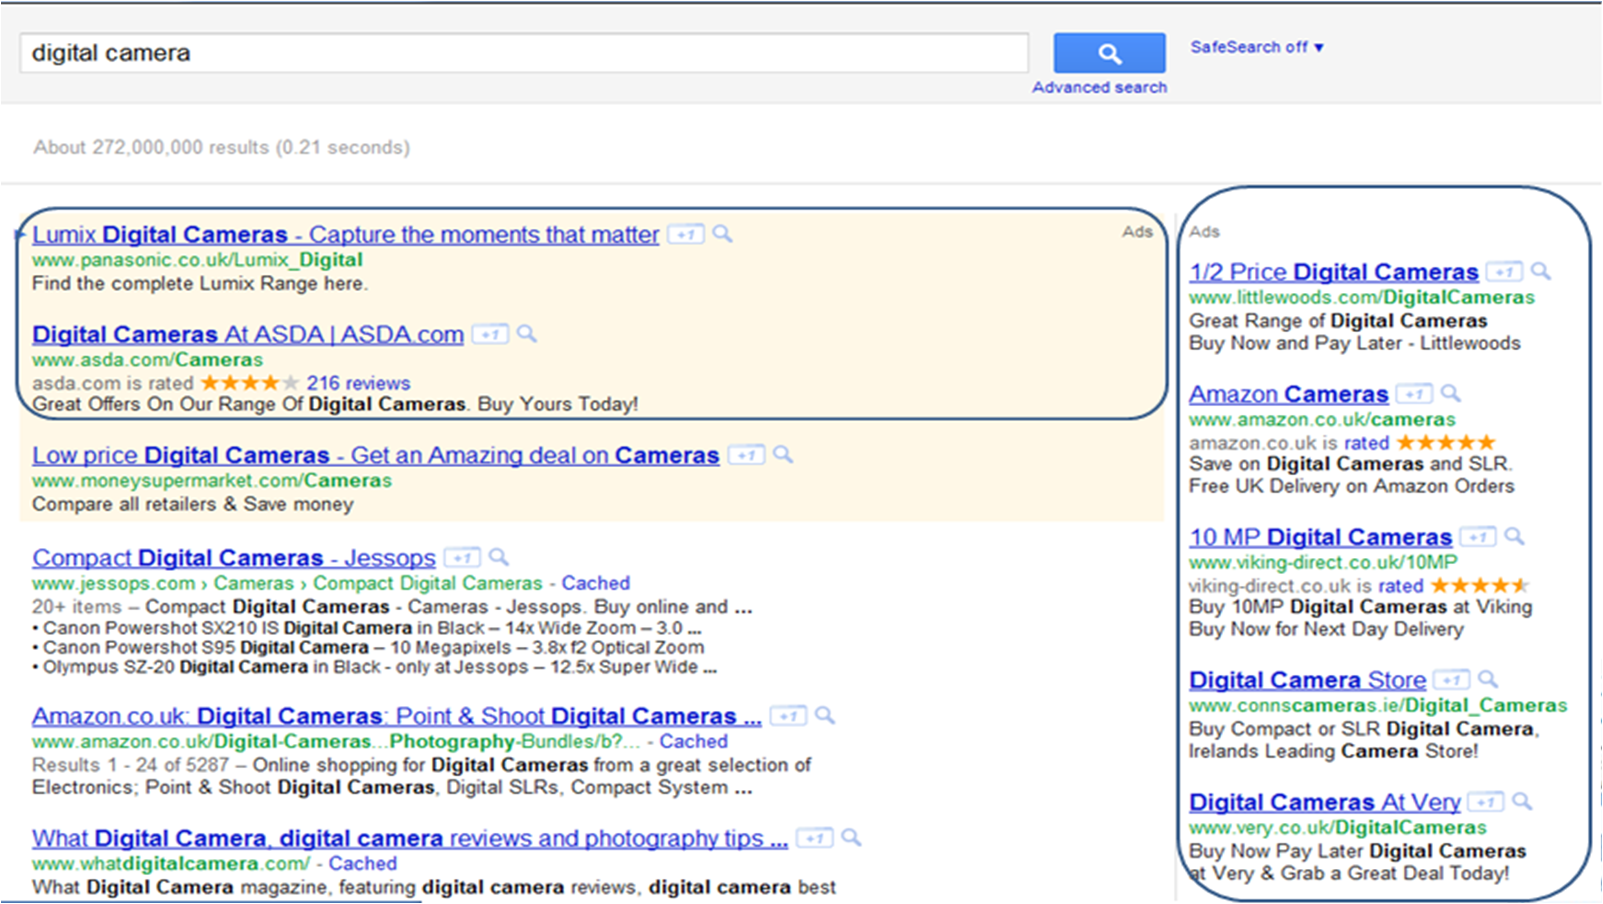 Google AdWords Ads Example Screenshot